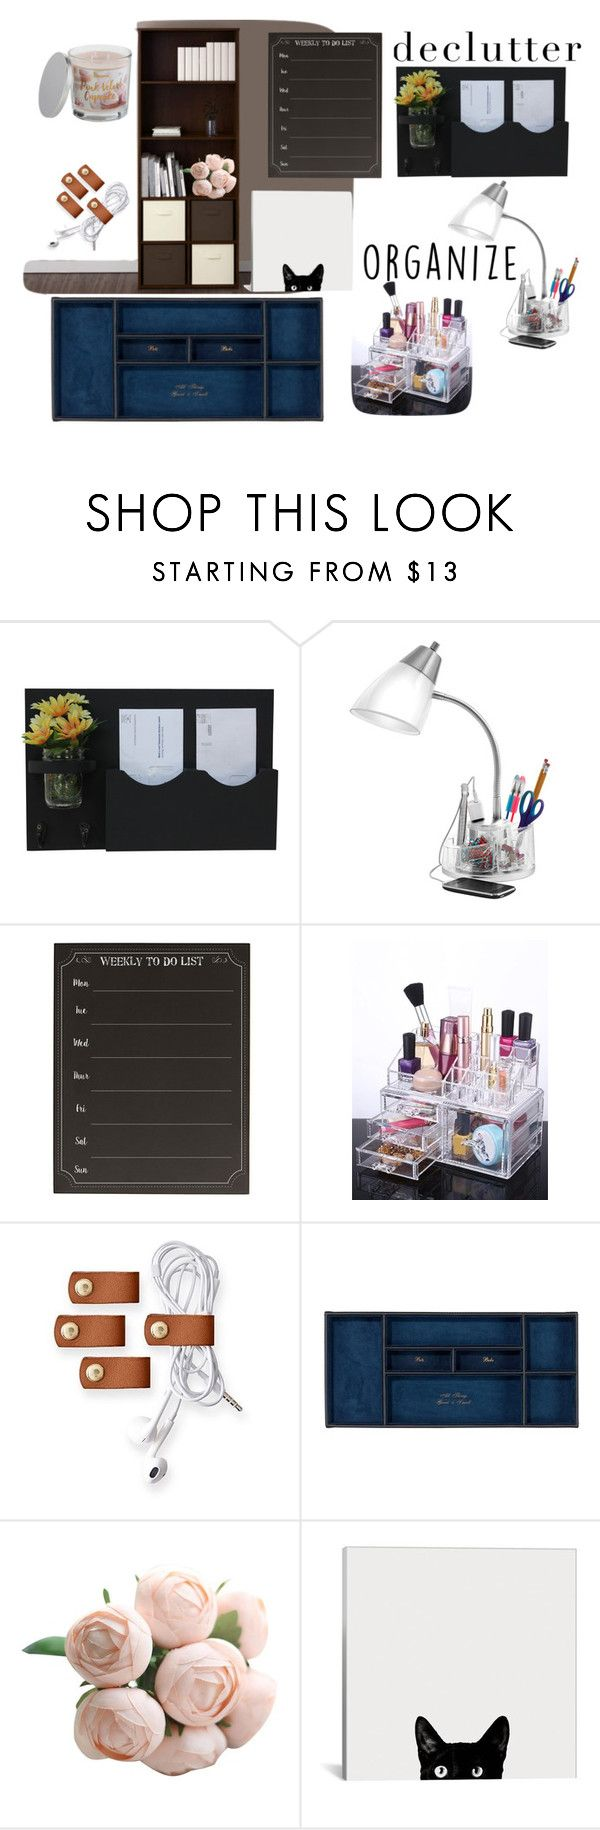 """""""Get it Together"""" by amypage-1 ❤ liked on Polyvore featuring interior, interiors, interior design, home, home decor, interior decorating, Catalina, Ameriwood, Cathy's Concepts and Mark & Graham"""